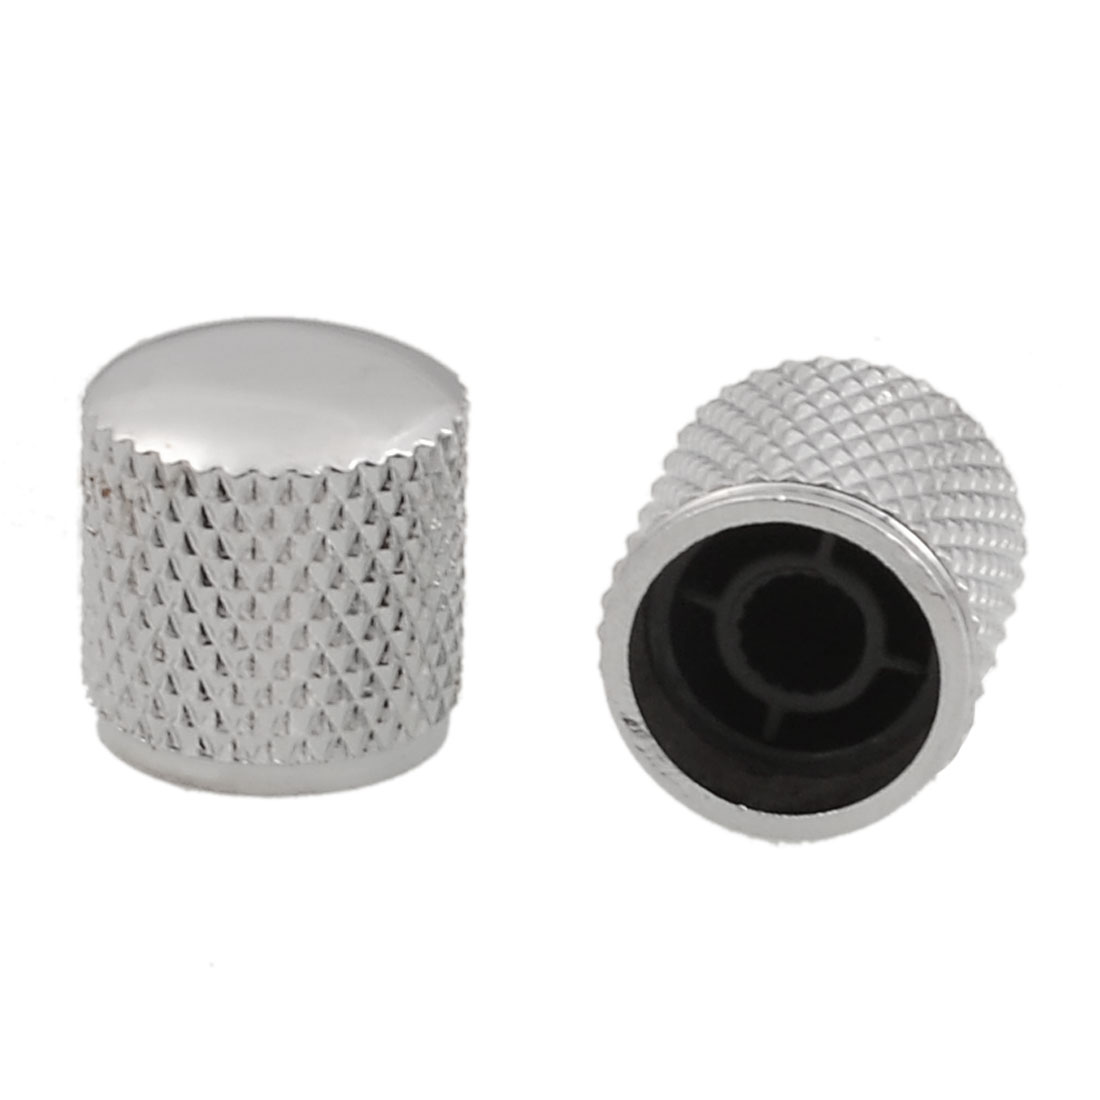 Stainless Steel Electric Guitar Volume Tone Control Knob Top Hat 2 Pcs